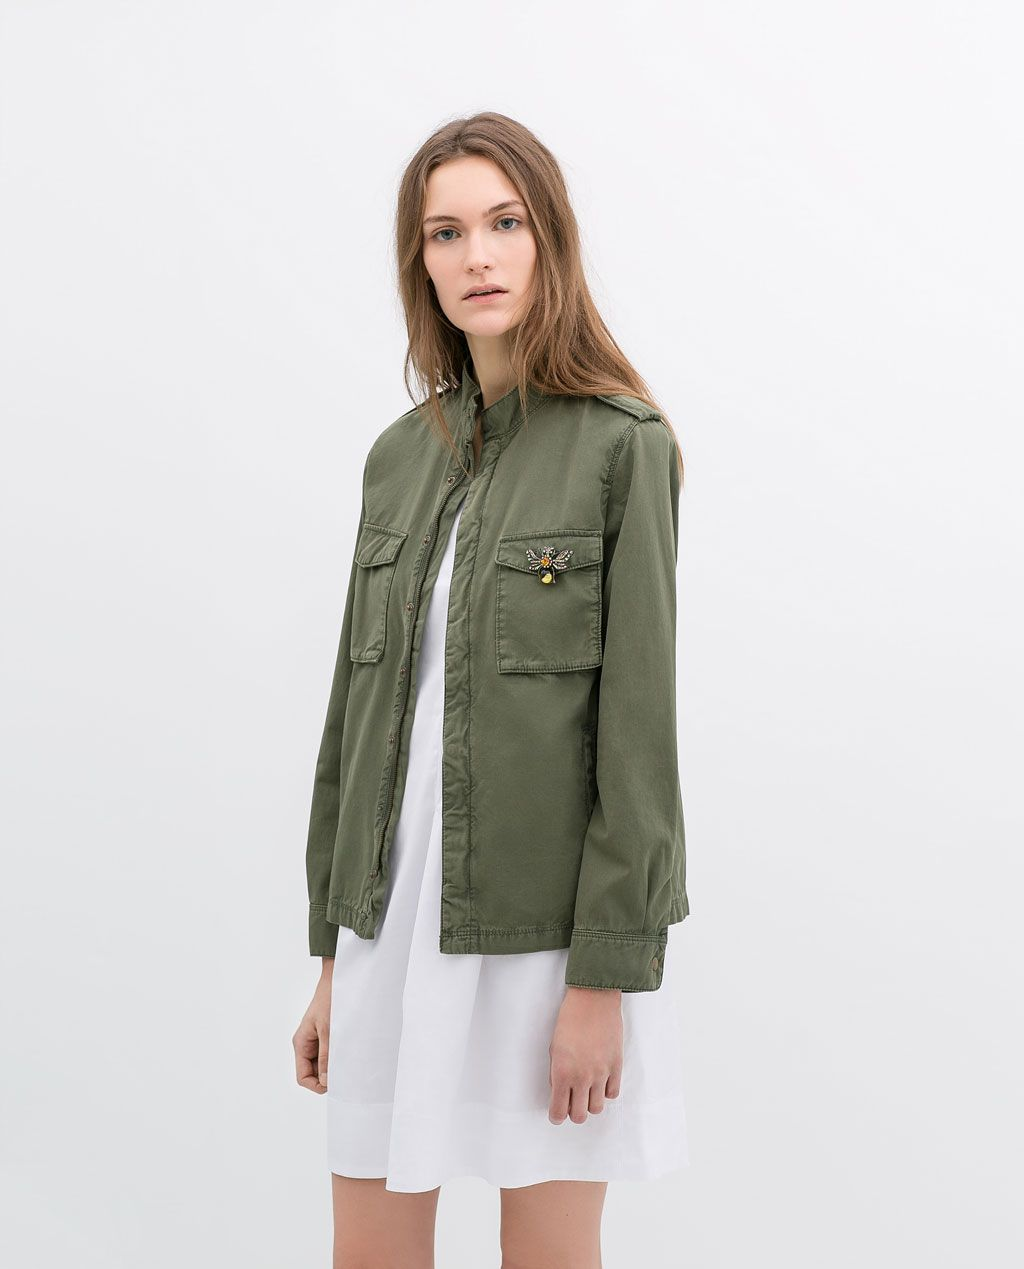 ZARA WOMAN OVERSHIRT WITH BROOCH | I love Clothes